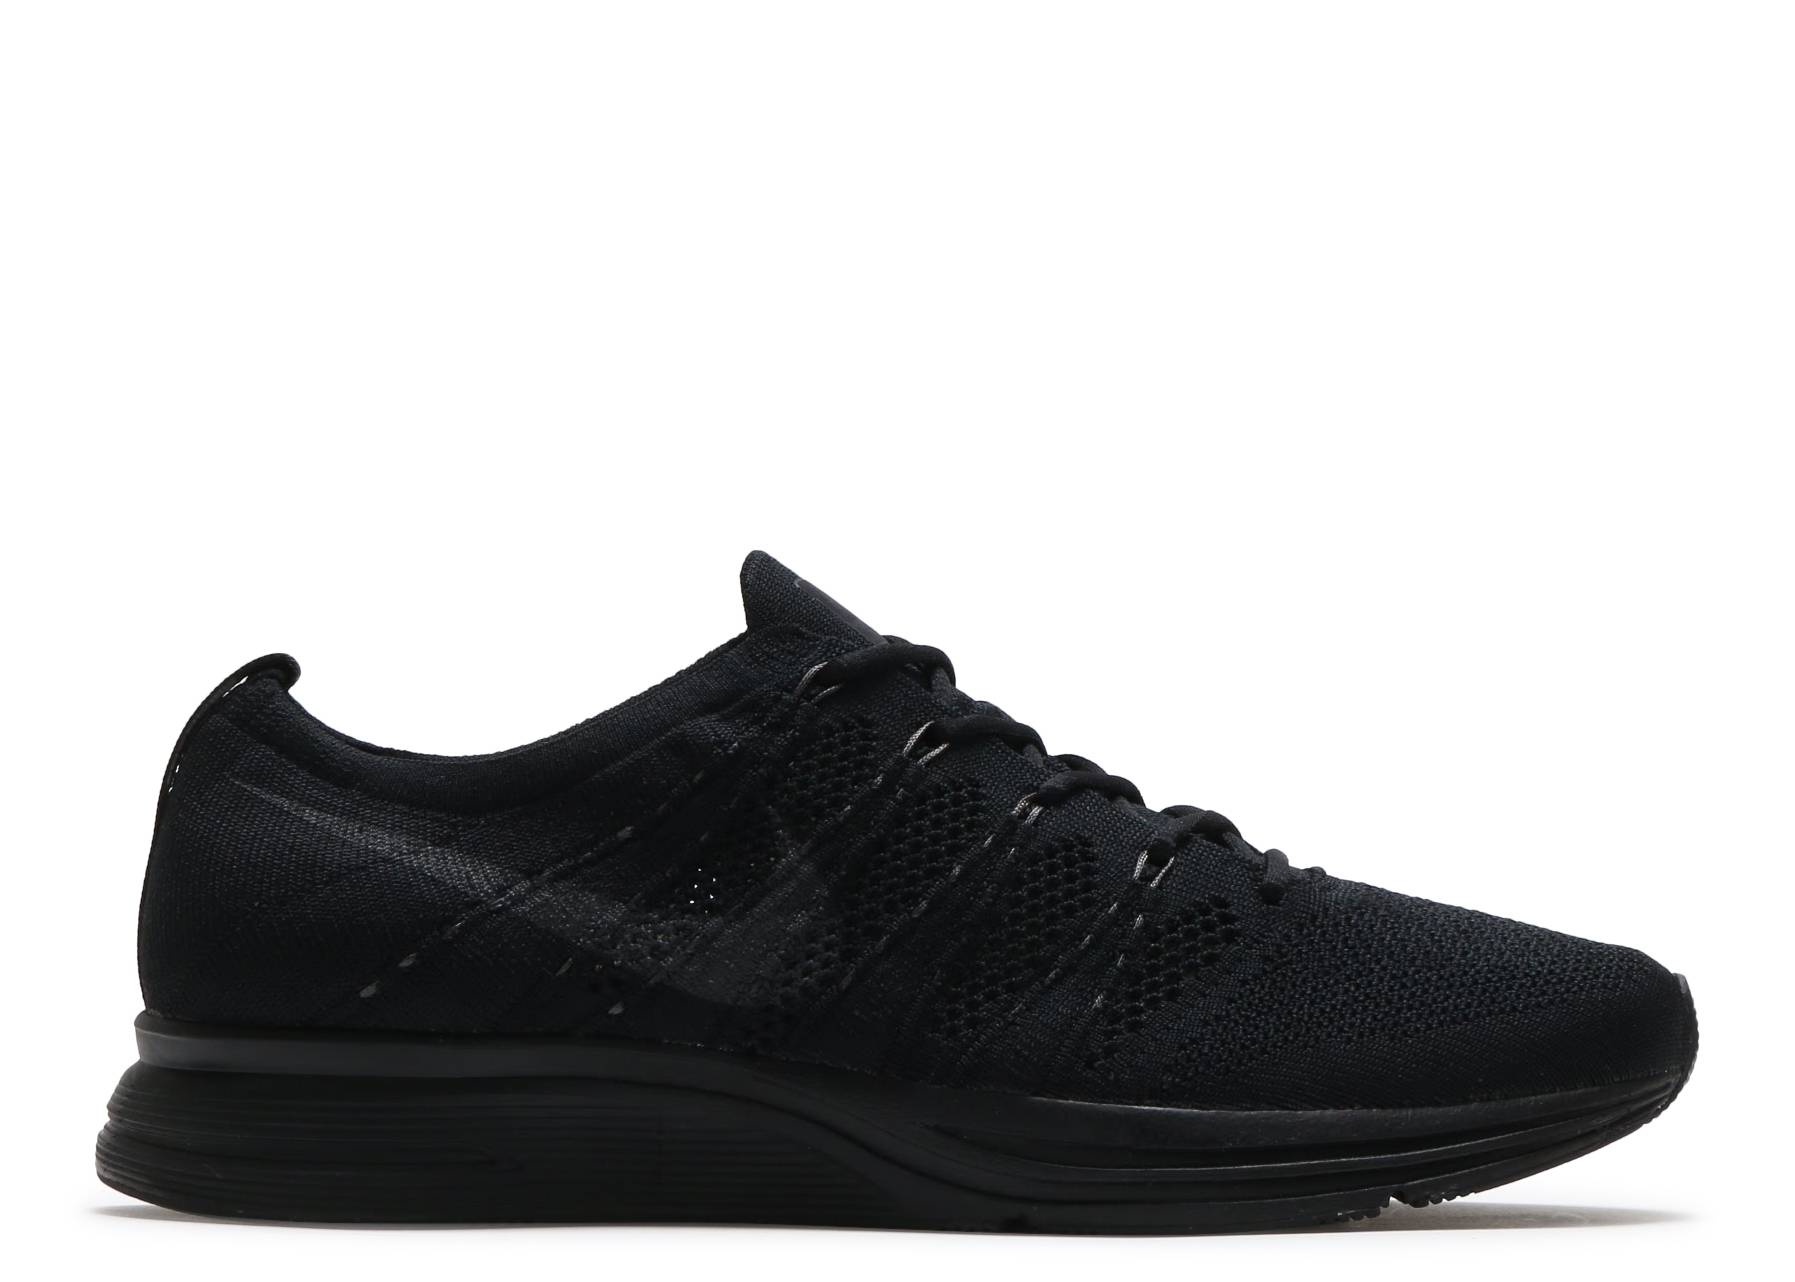 0df601a86115 FLYKNIT TRAINER - Nike - ah8396 004 - black anthracite-black ...